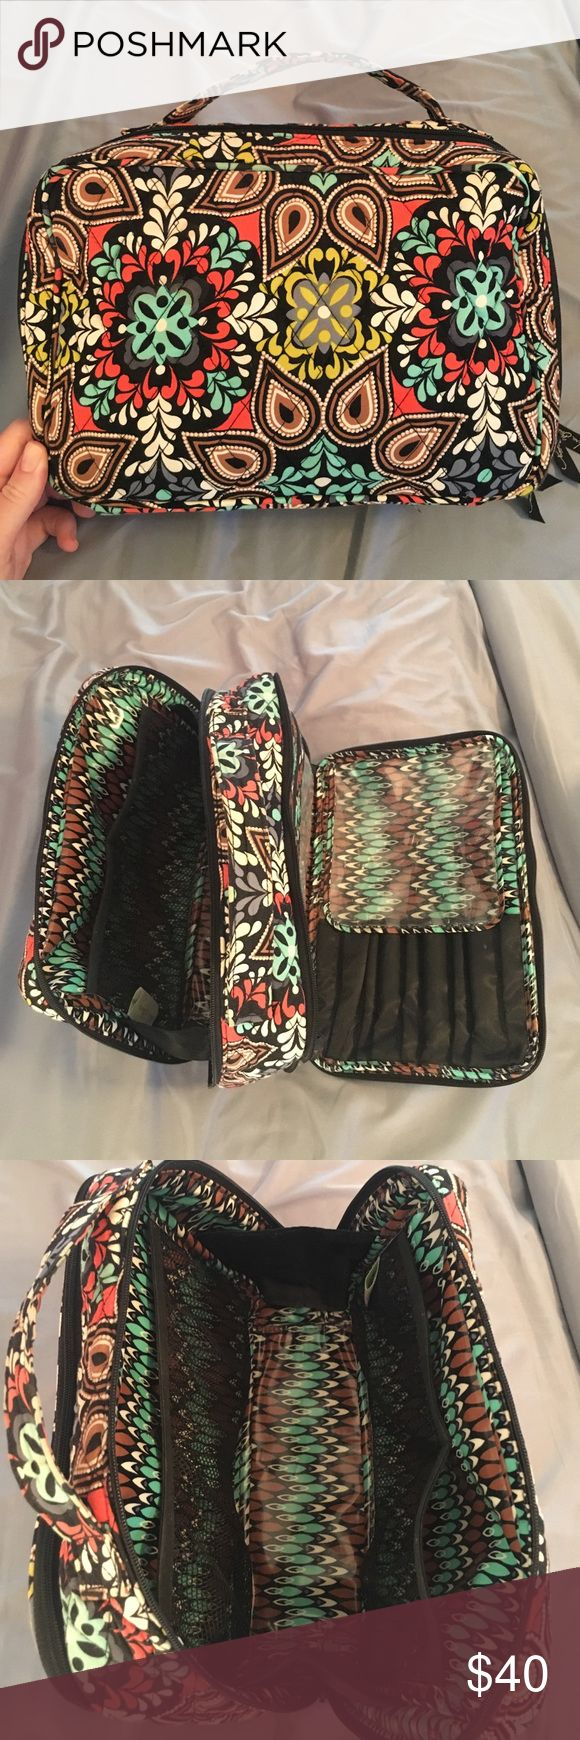 Vera Bradley Large Cosmetic Blush/Brush Makeup Bag Vera Bradley large makeup bag, also holds all your brushes and toiletry items. Great for traveling. In great condition. No stains or tears or signs of wear. Pet and smoke free home. Pattern is Sierria Vera Bradley Bags